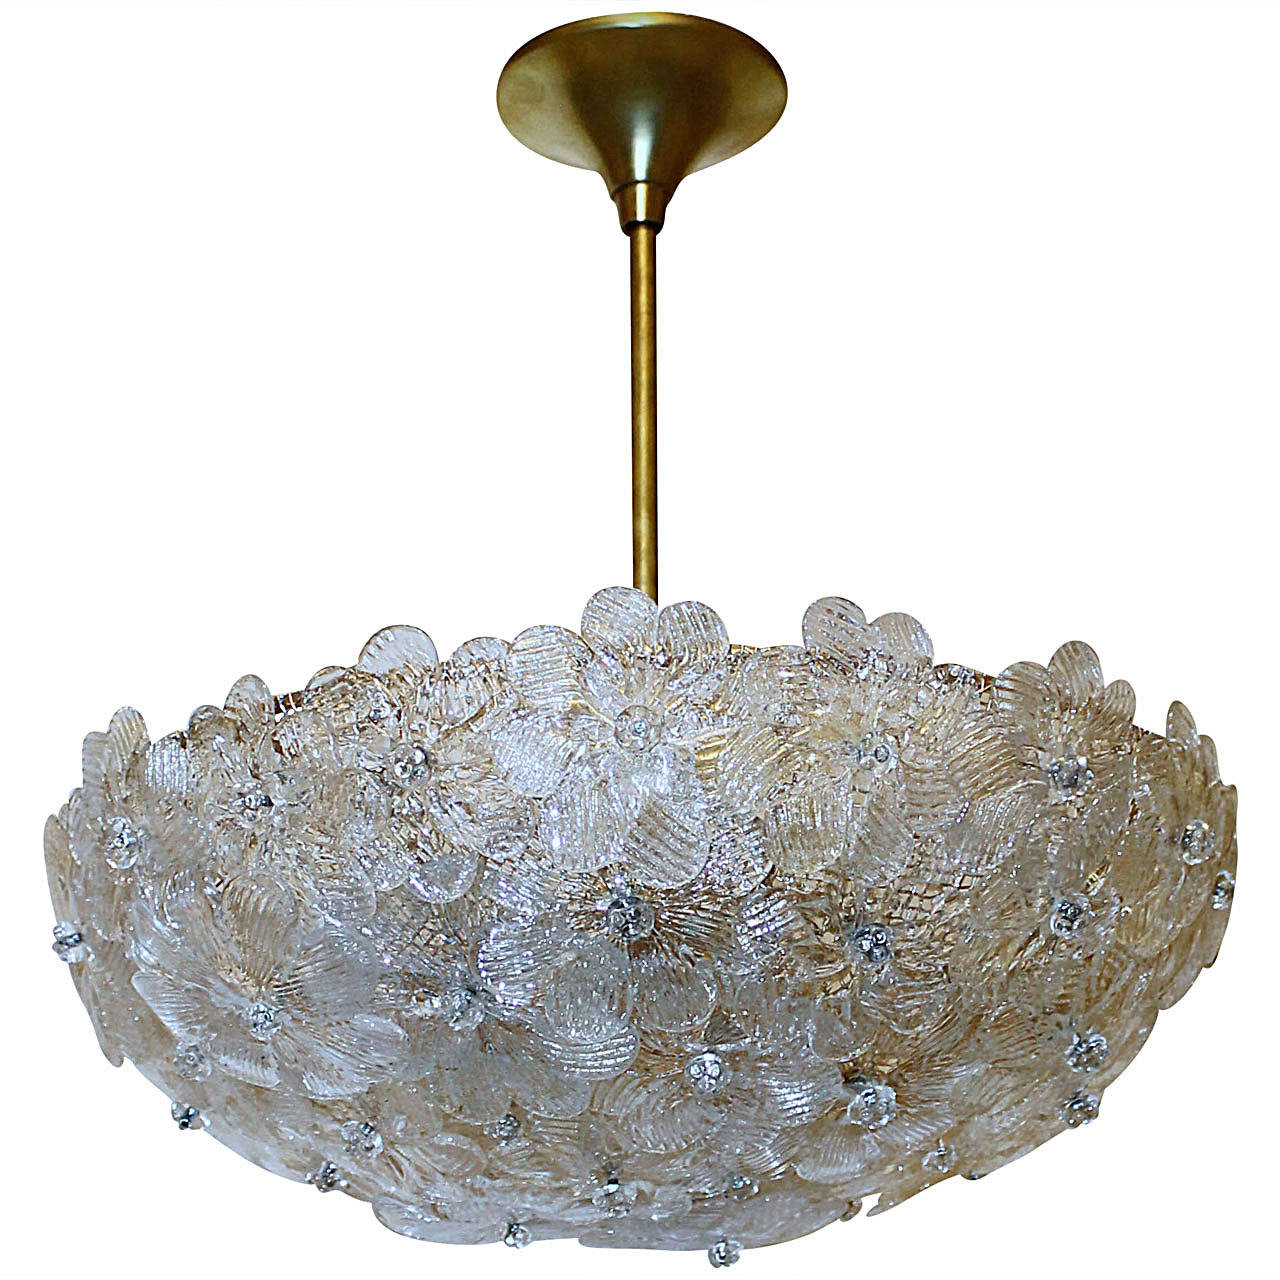 Barovier Murano Glass Floral Ceiling Pendant Light Chandelier at 1stdibs